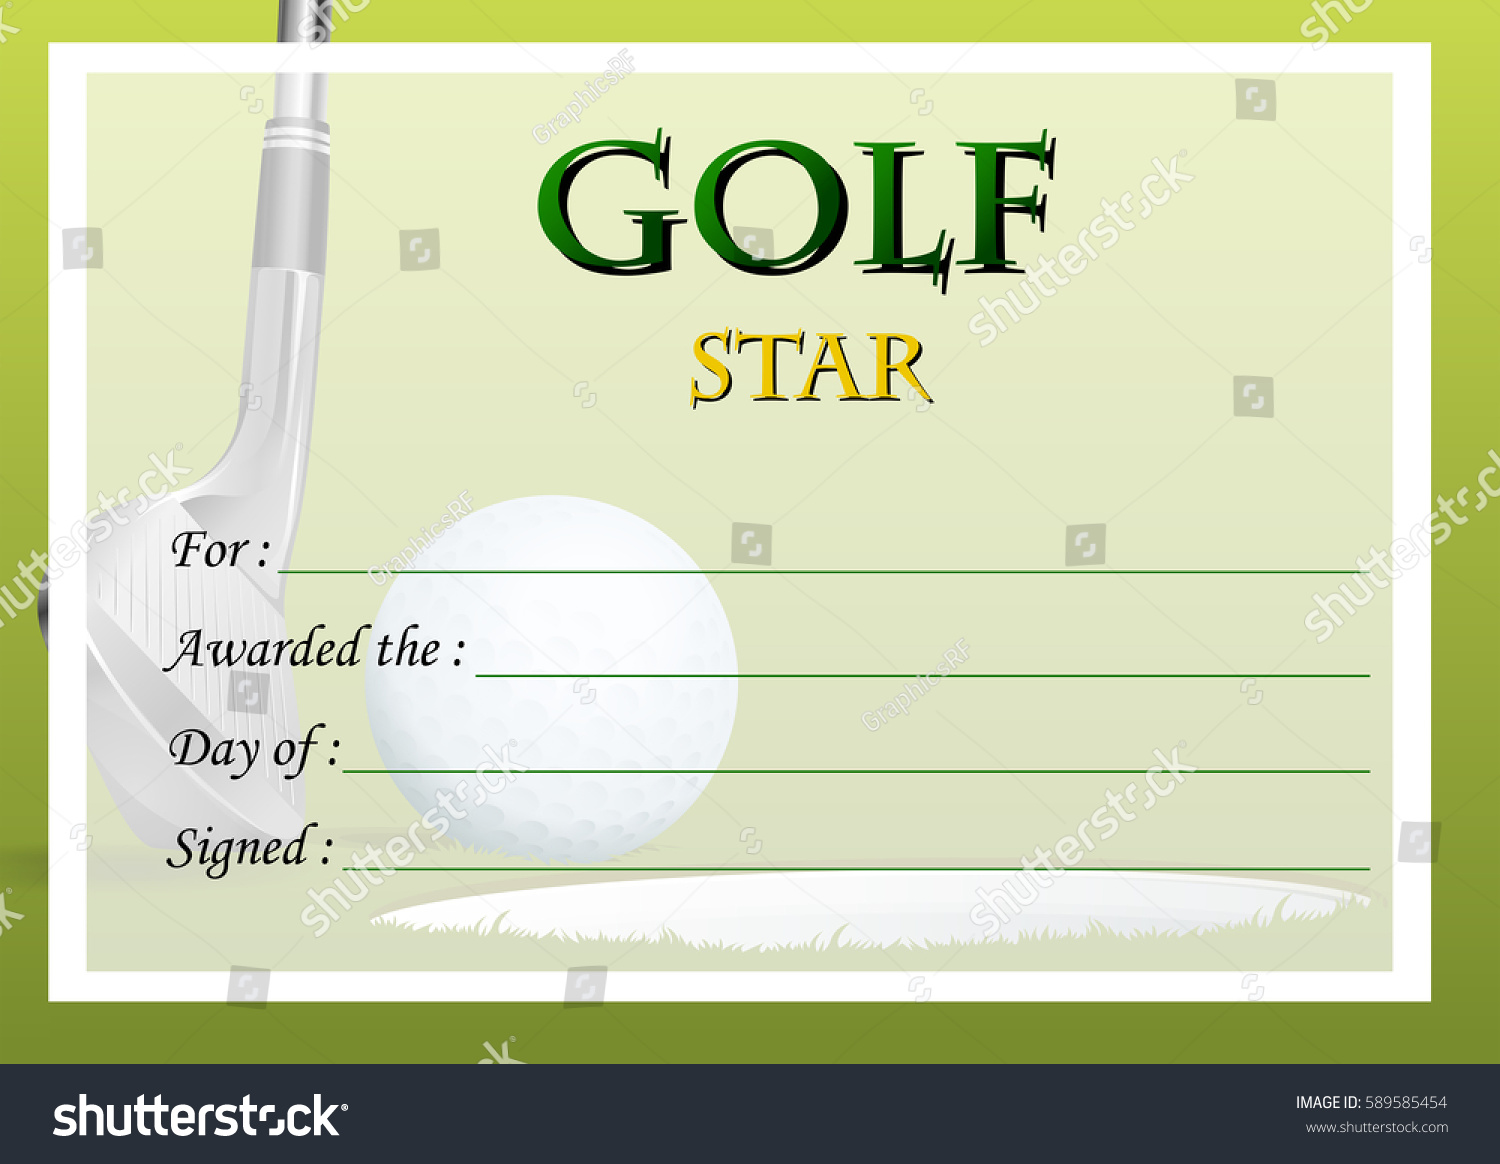 Fine golf certificate templates pictures inspiration example free hole in one certificate template choice image templates 1betcityfo Choice Image